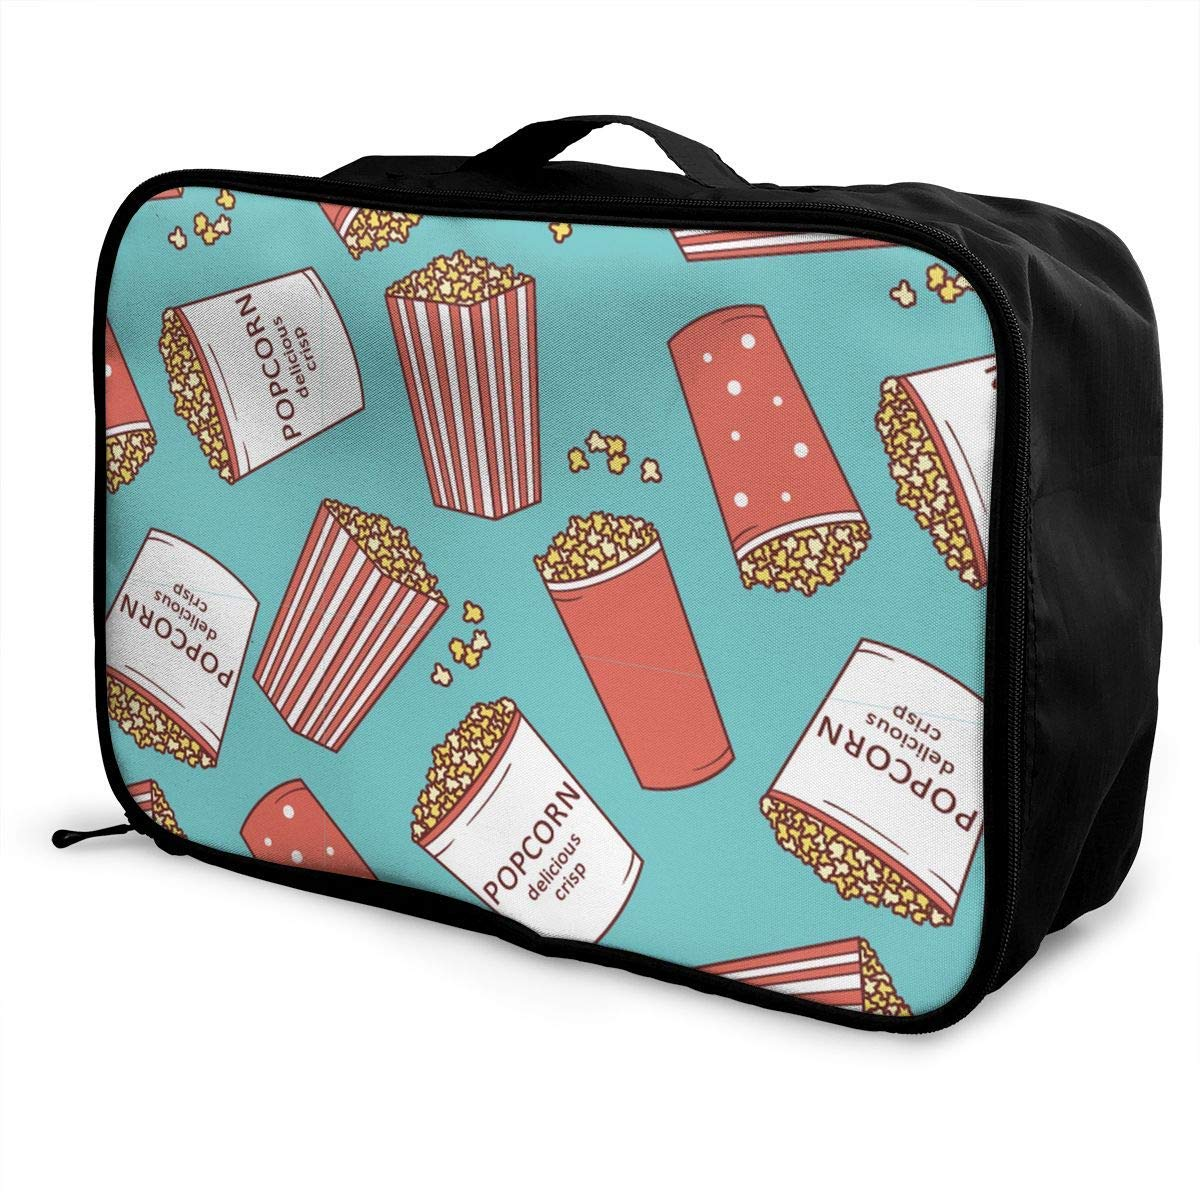 Popcorn Travel Lightweight Waterproof Foldable Storage Carry Luggage Duffle Tote Bag JTRVW Luggage Bags for Travel